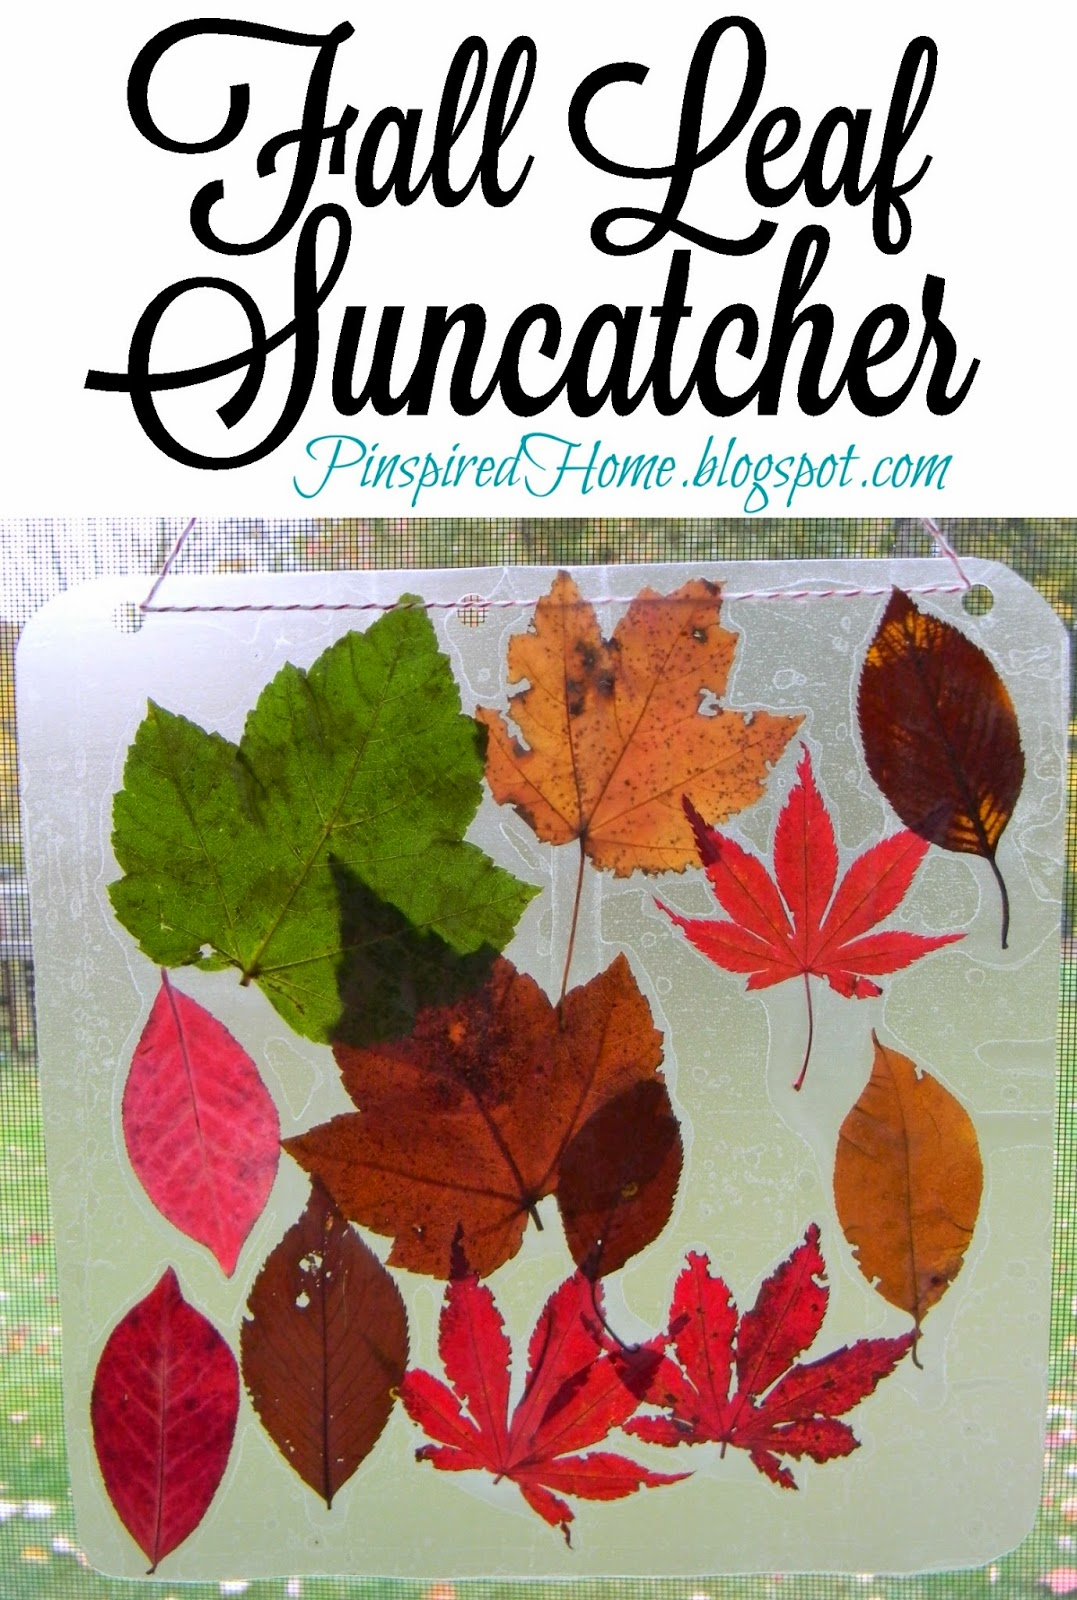 http://pinspiredhome.blogspot.com/2014/11/simple-fall-leaf-suncatchers.html